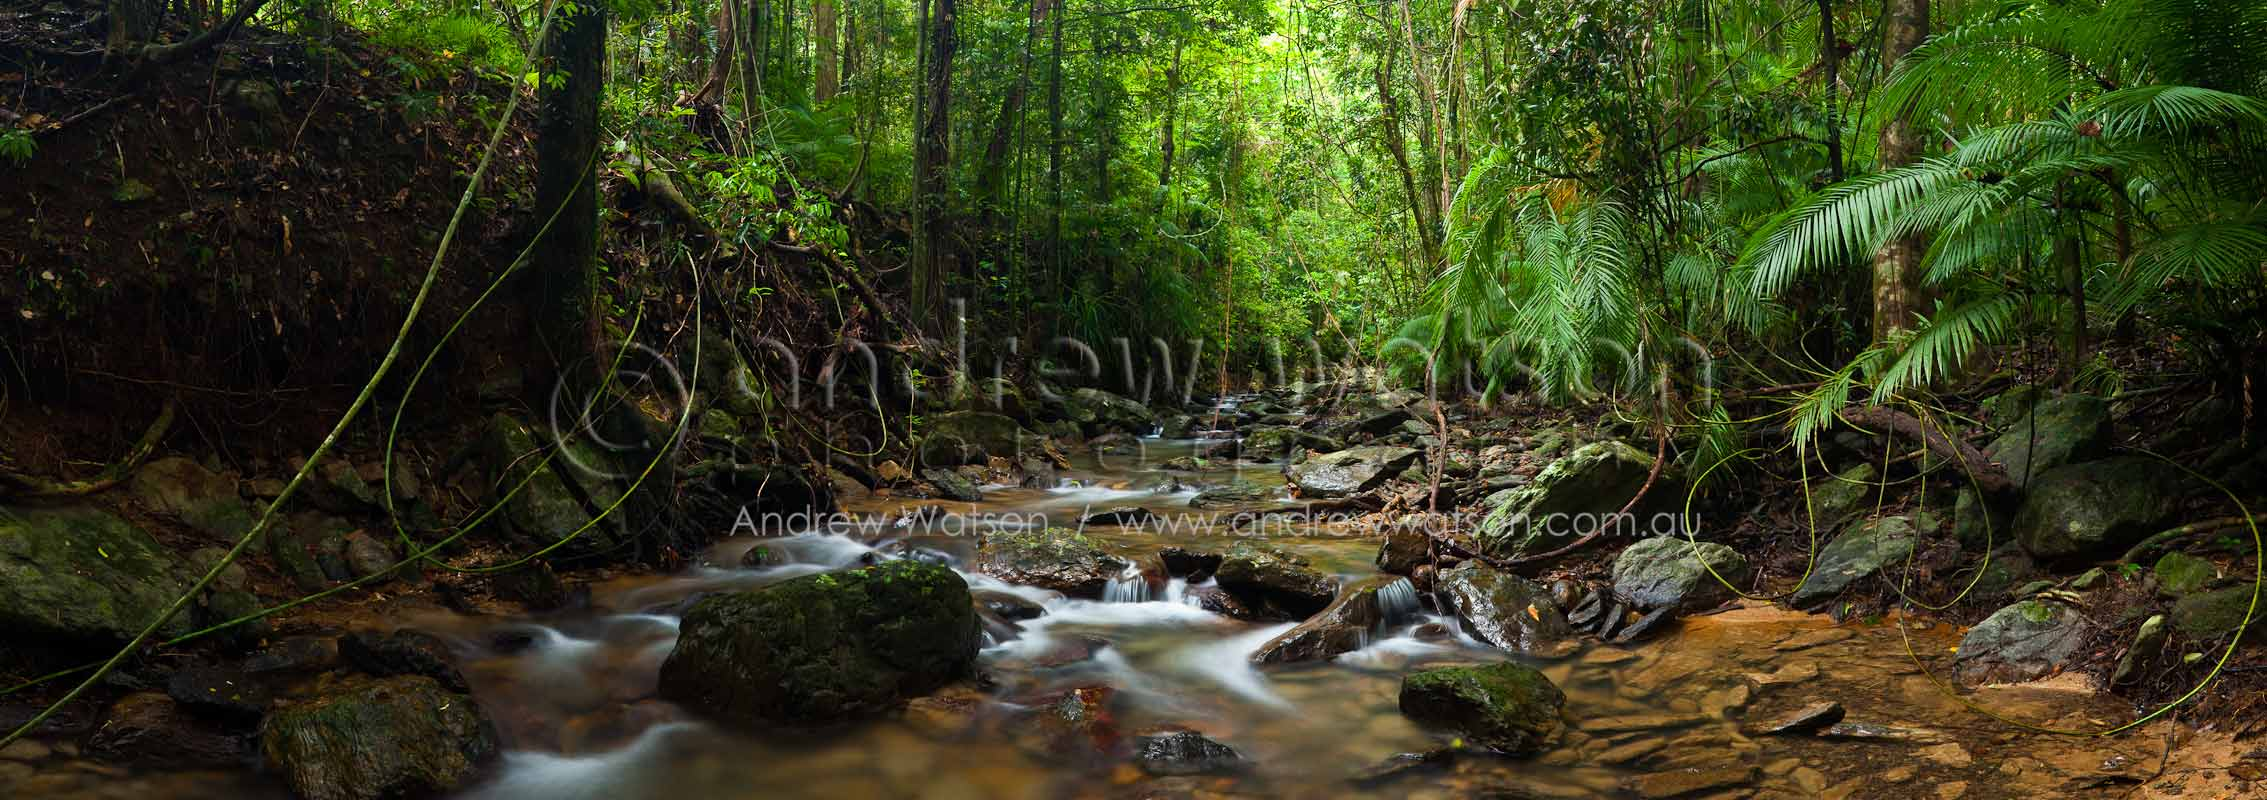 Tropical rainforest creek at Crystal CascadesCairns, North QueenslandImage available for licensing or as a fine-art print... please enquire